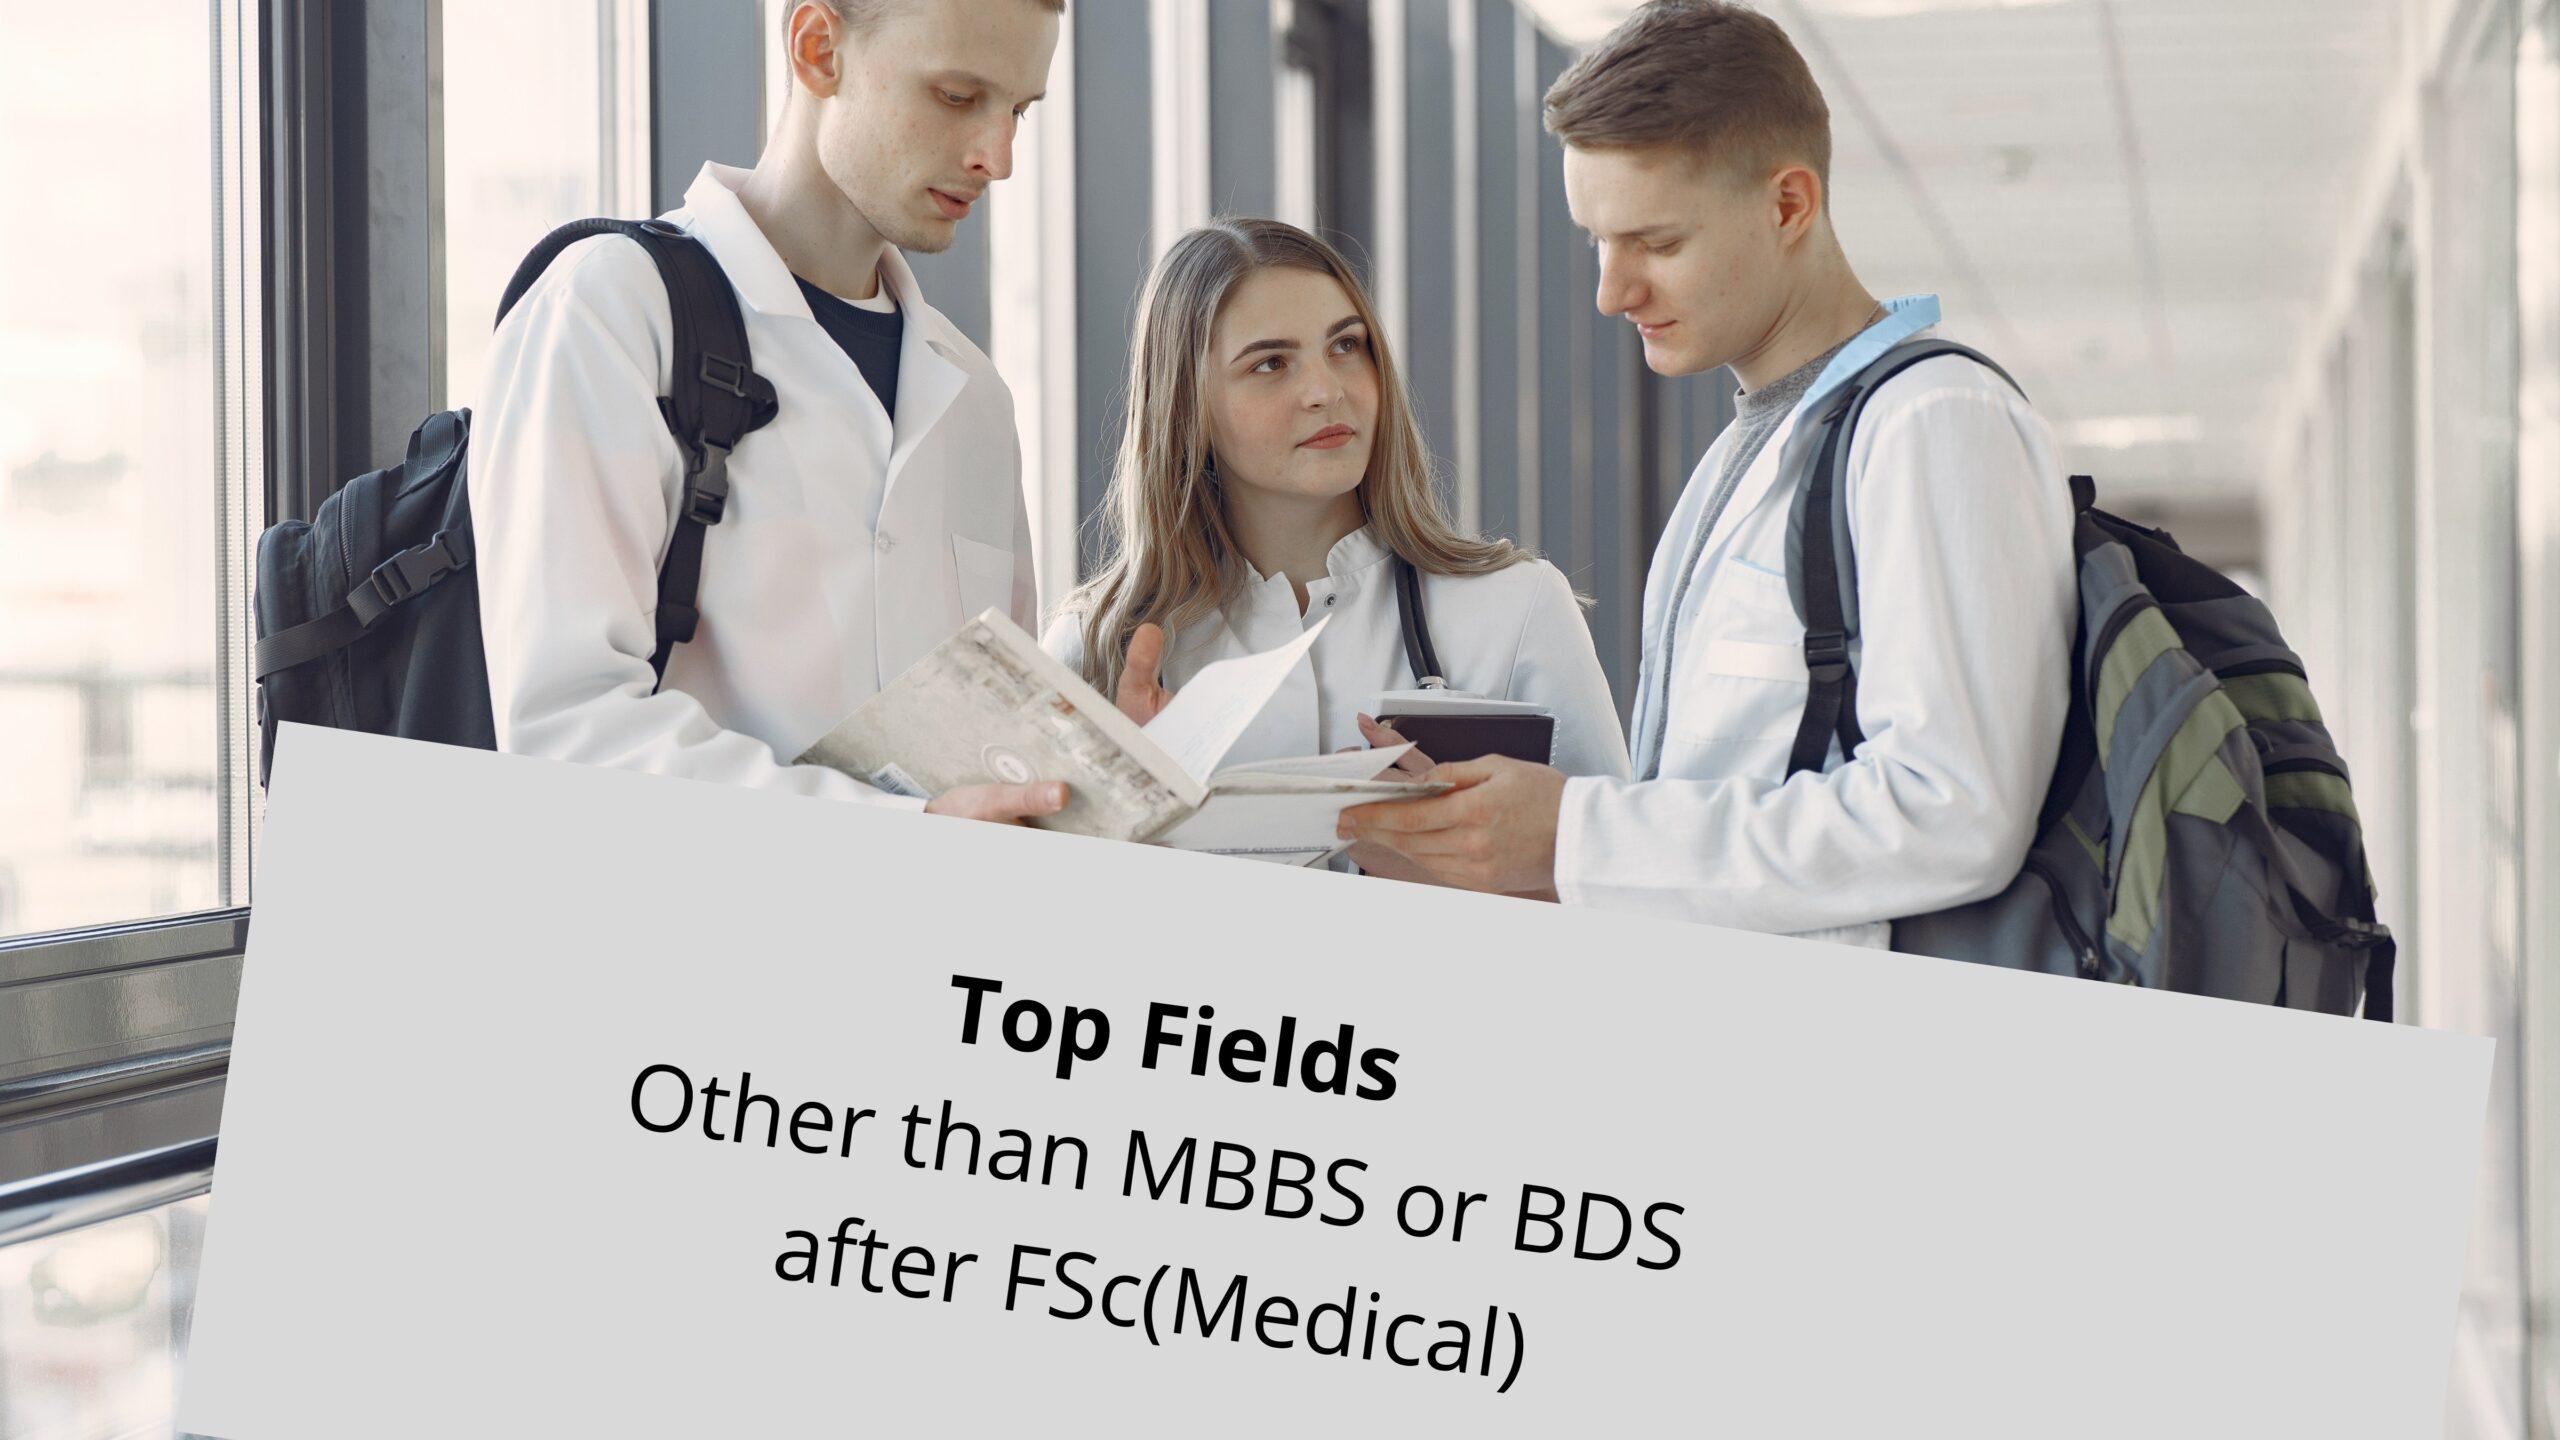 Top Fields other than MBBS or BDS after FSc(Pre-Medical)